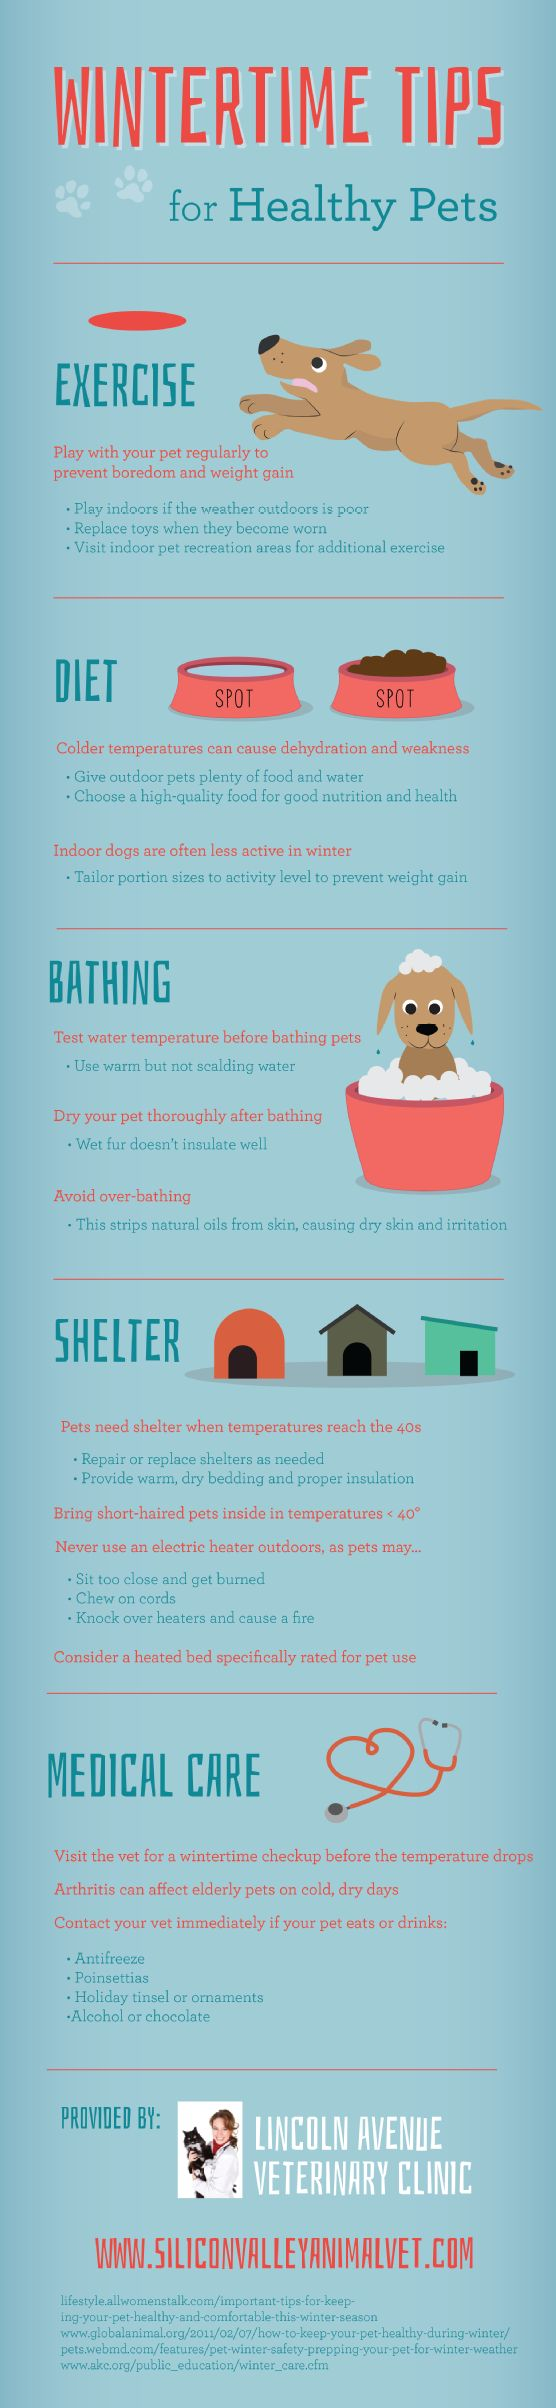 Pet owners should avoid using electric heaters outdoors, as pets may sit too close and get burned, chew on cords, or knock over heaters and cause a fire hazard. Discover other safety tips by clicking over to this San Jose pet clinic infographic.